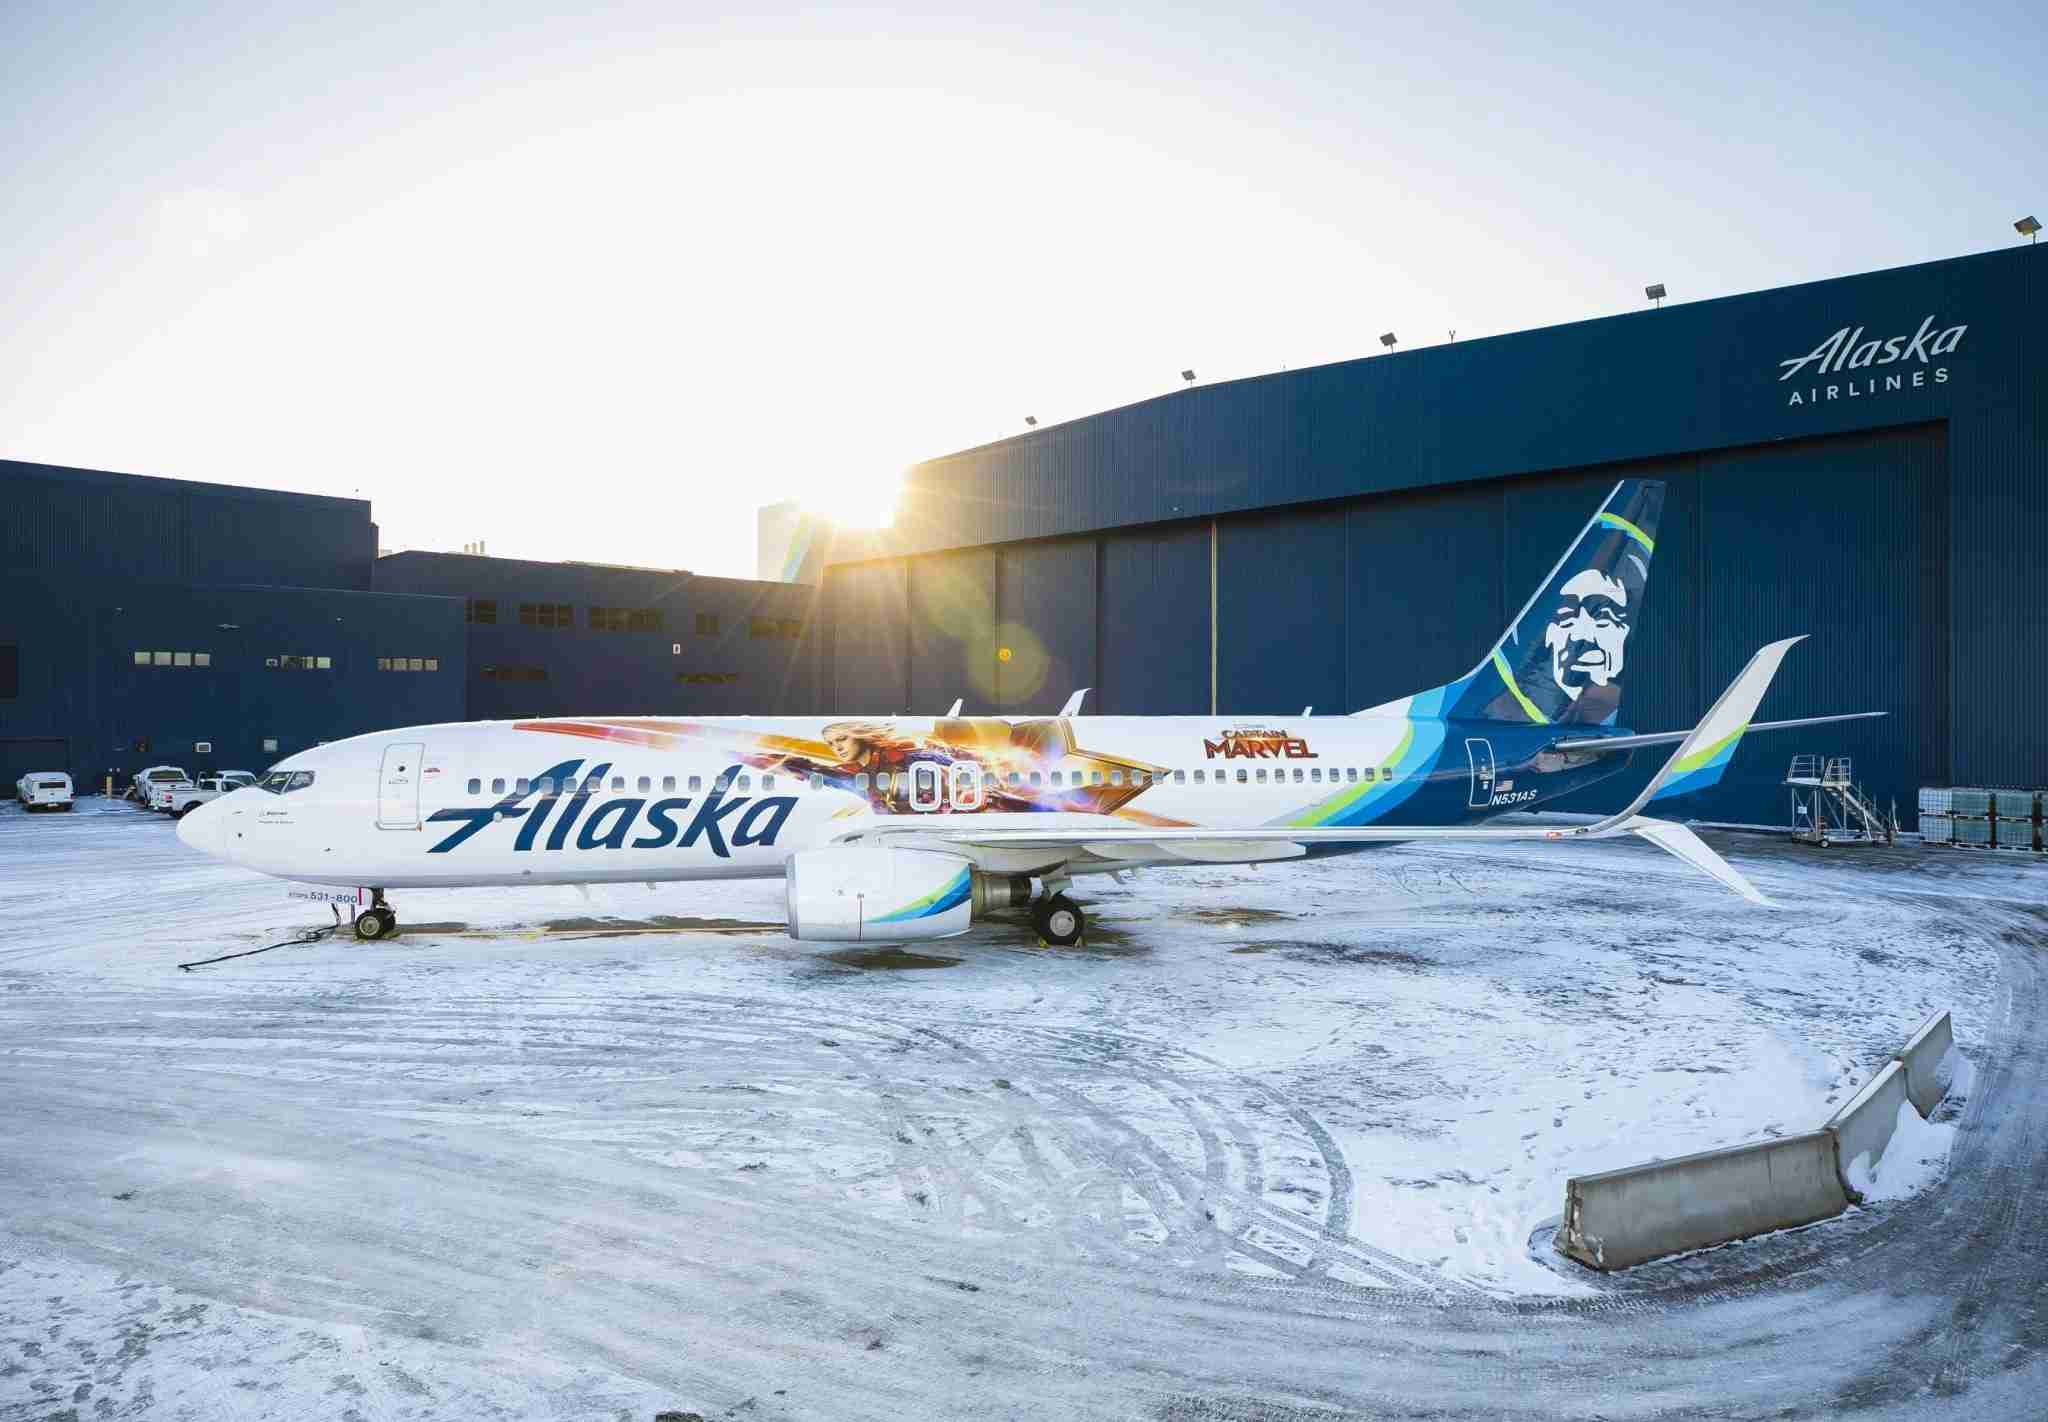 (Image courtesy of Alaska Airlines)